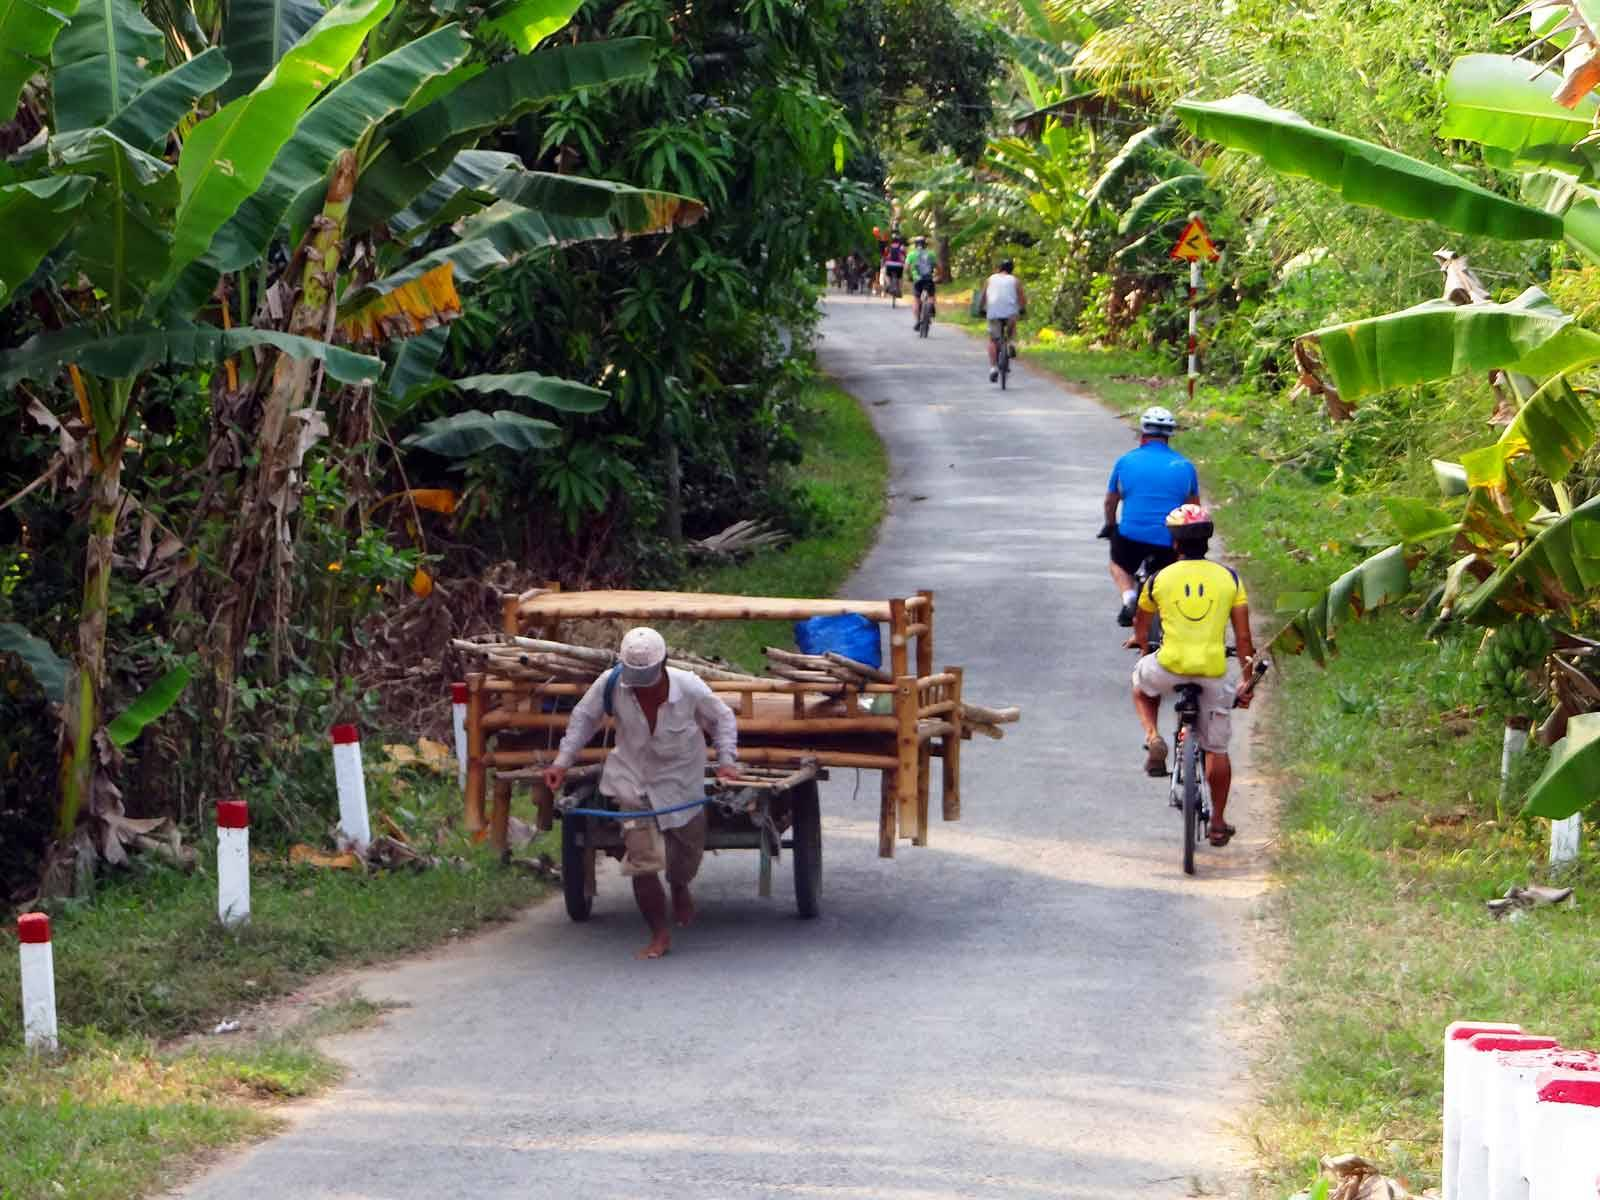 SpiceRoads Cycle Tours in Asia Saigon to Siem Reap